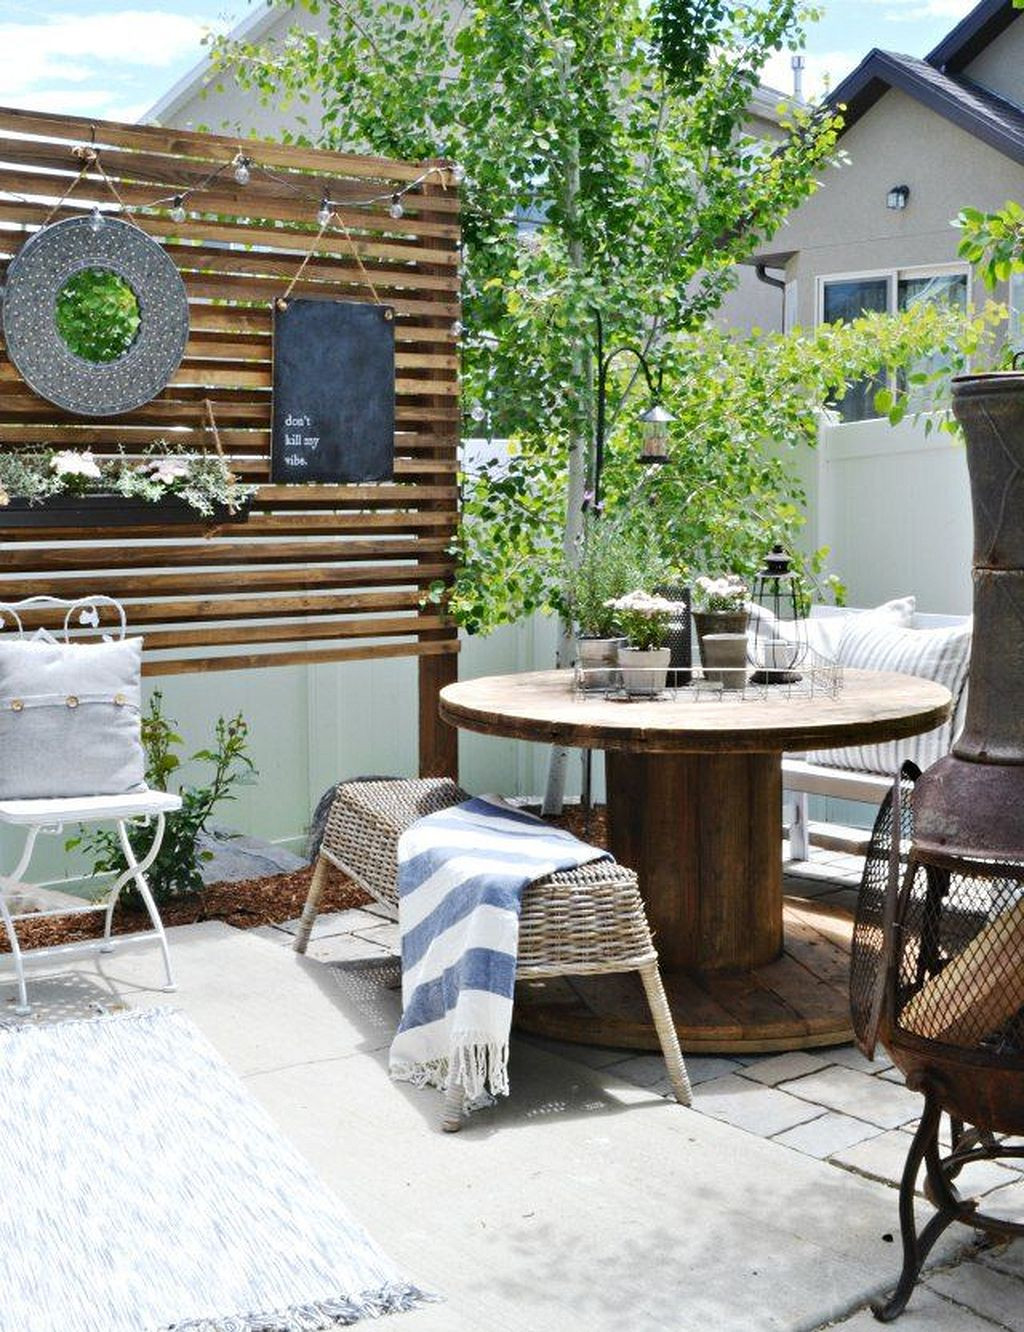 Best ideas about Cheap DIY Backyard Ideas . Save or Pin 20 DIY Patio Ideas Low Bud – decoratioon Now.